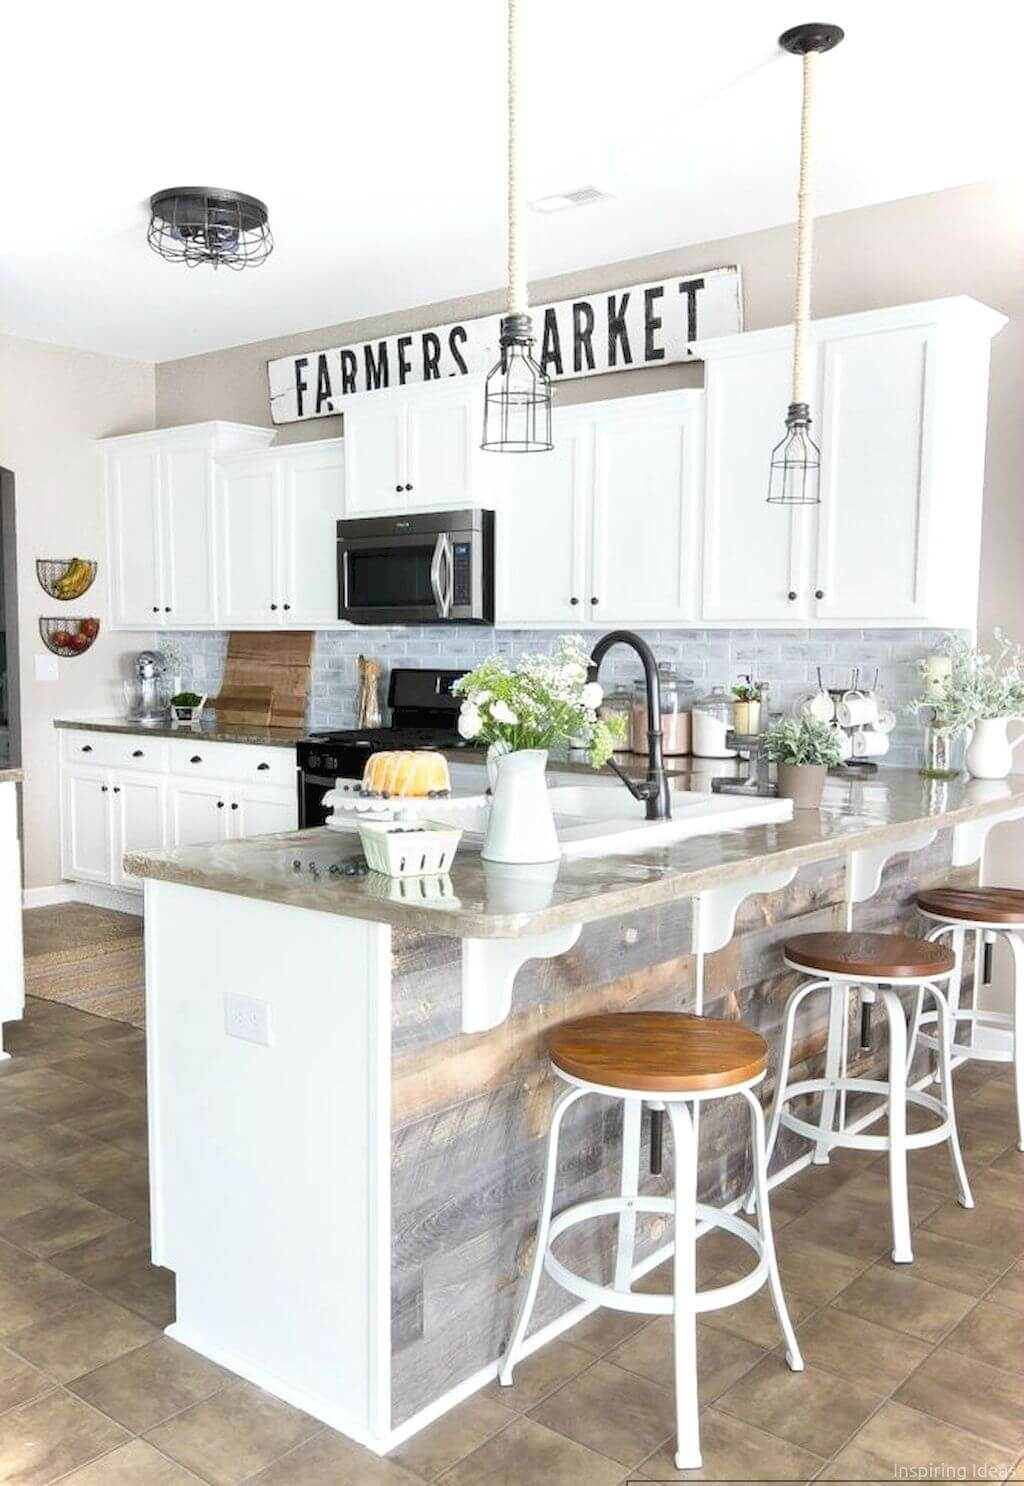 Grayscale and White Cabinets with Black Accents